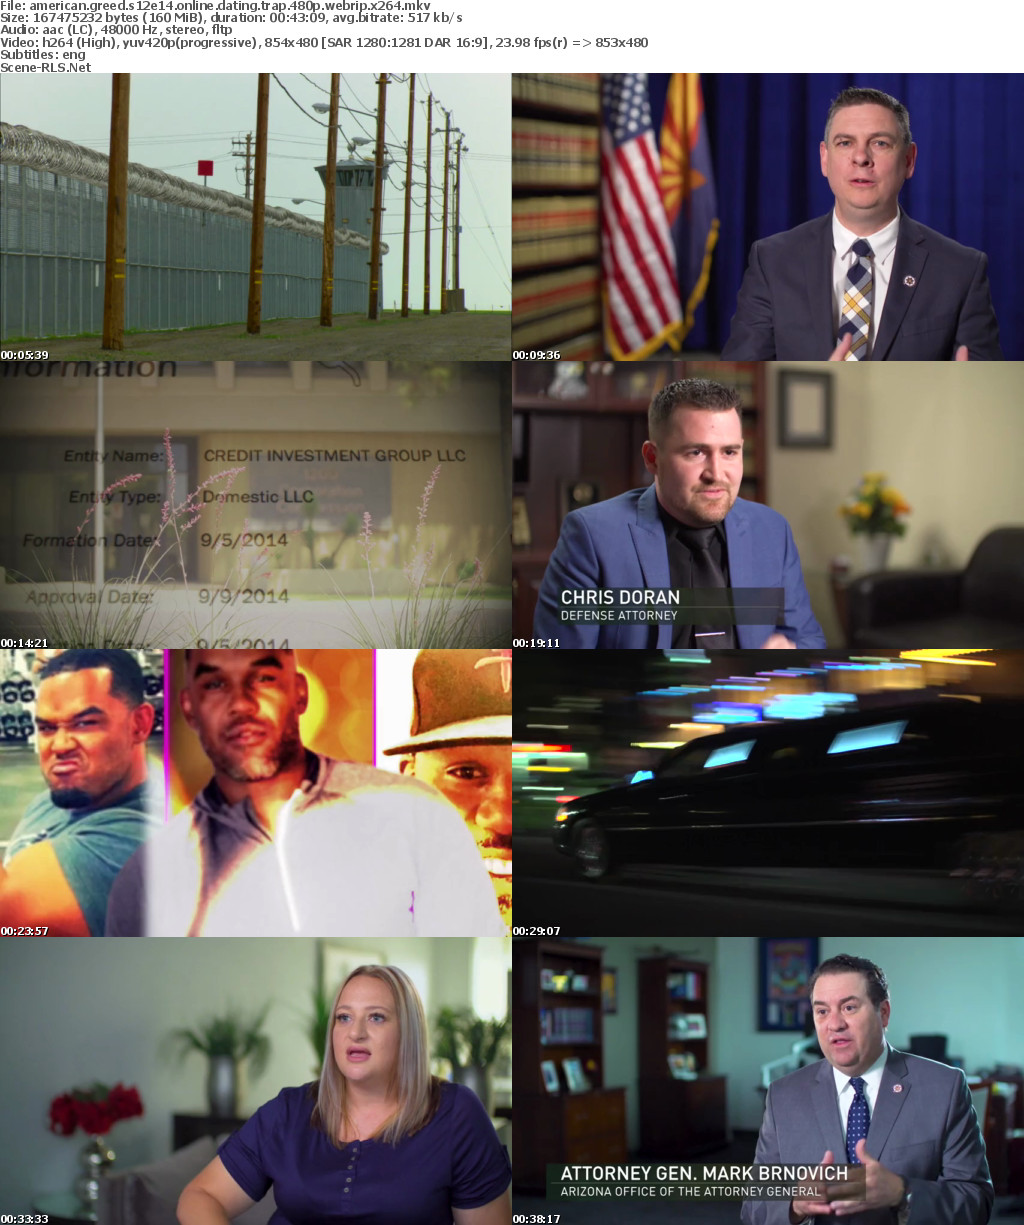 Online dating trap american greed